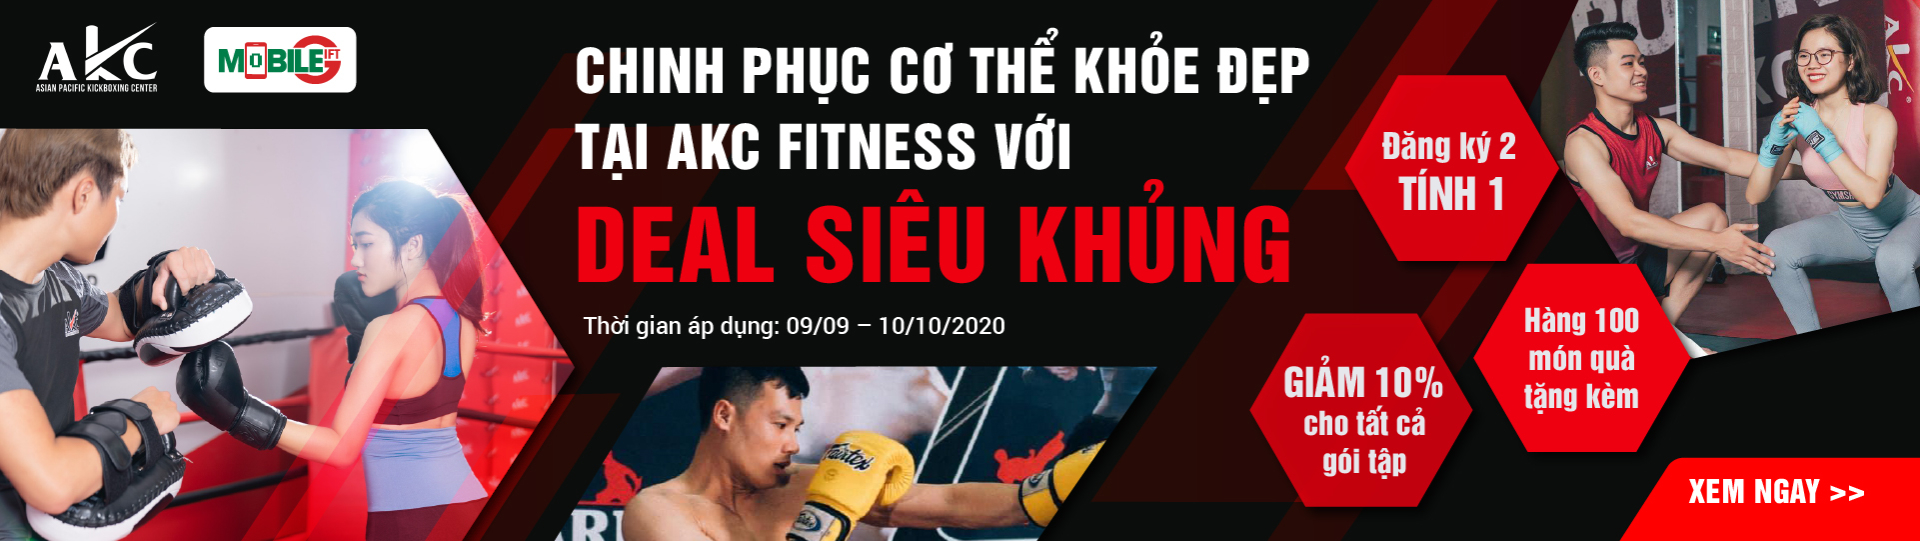 akc-fitness-1920x540-fixed